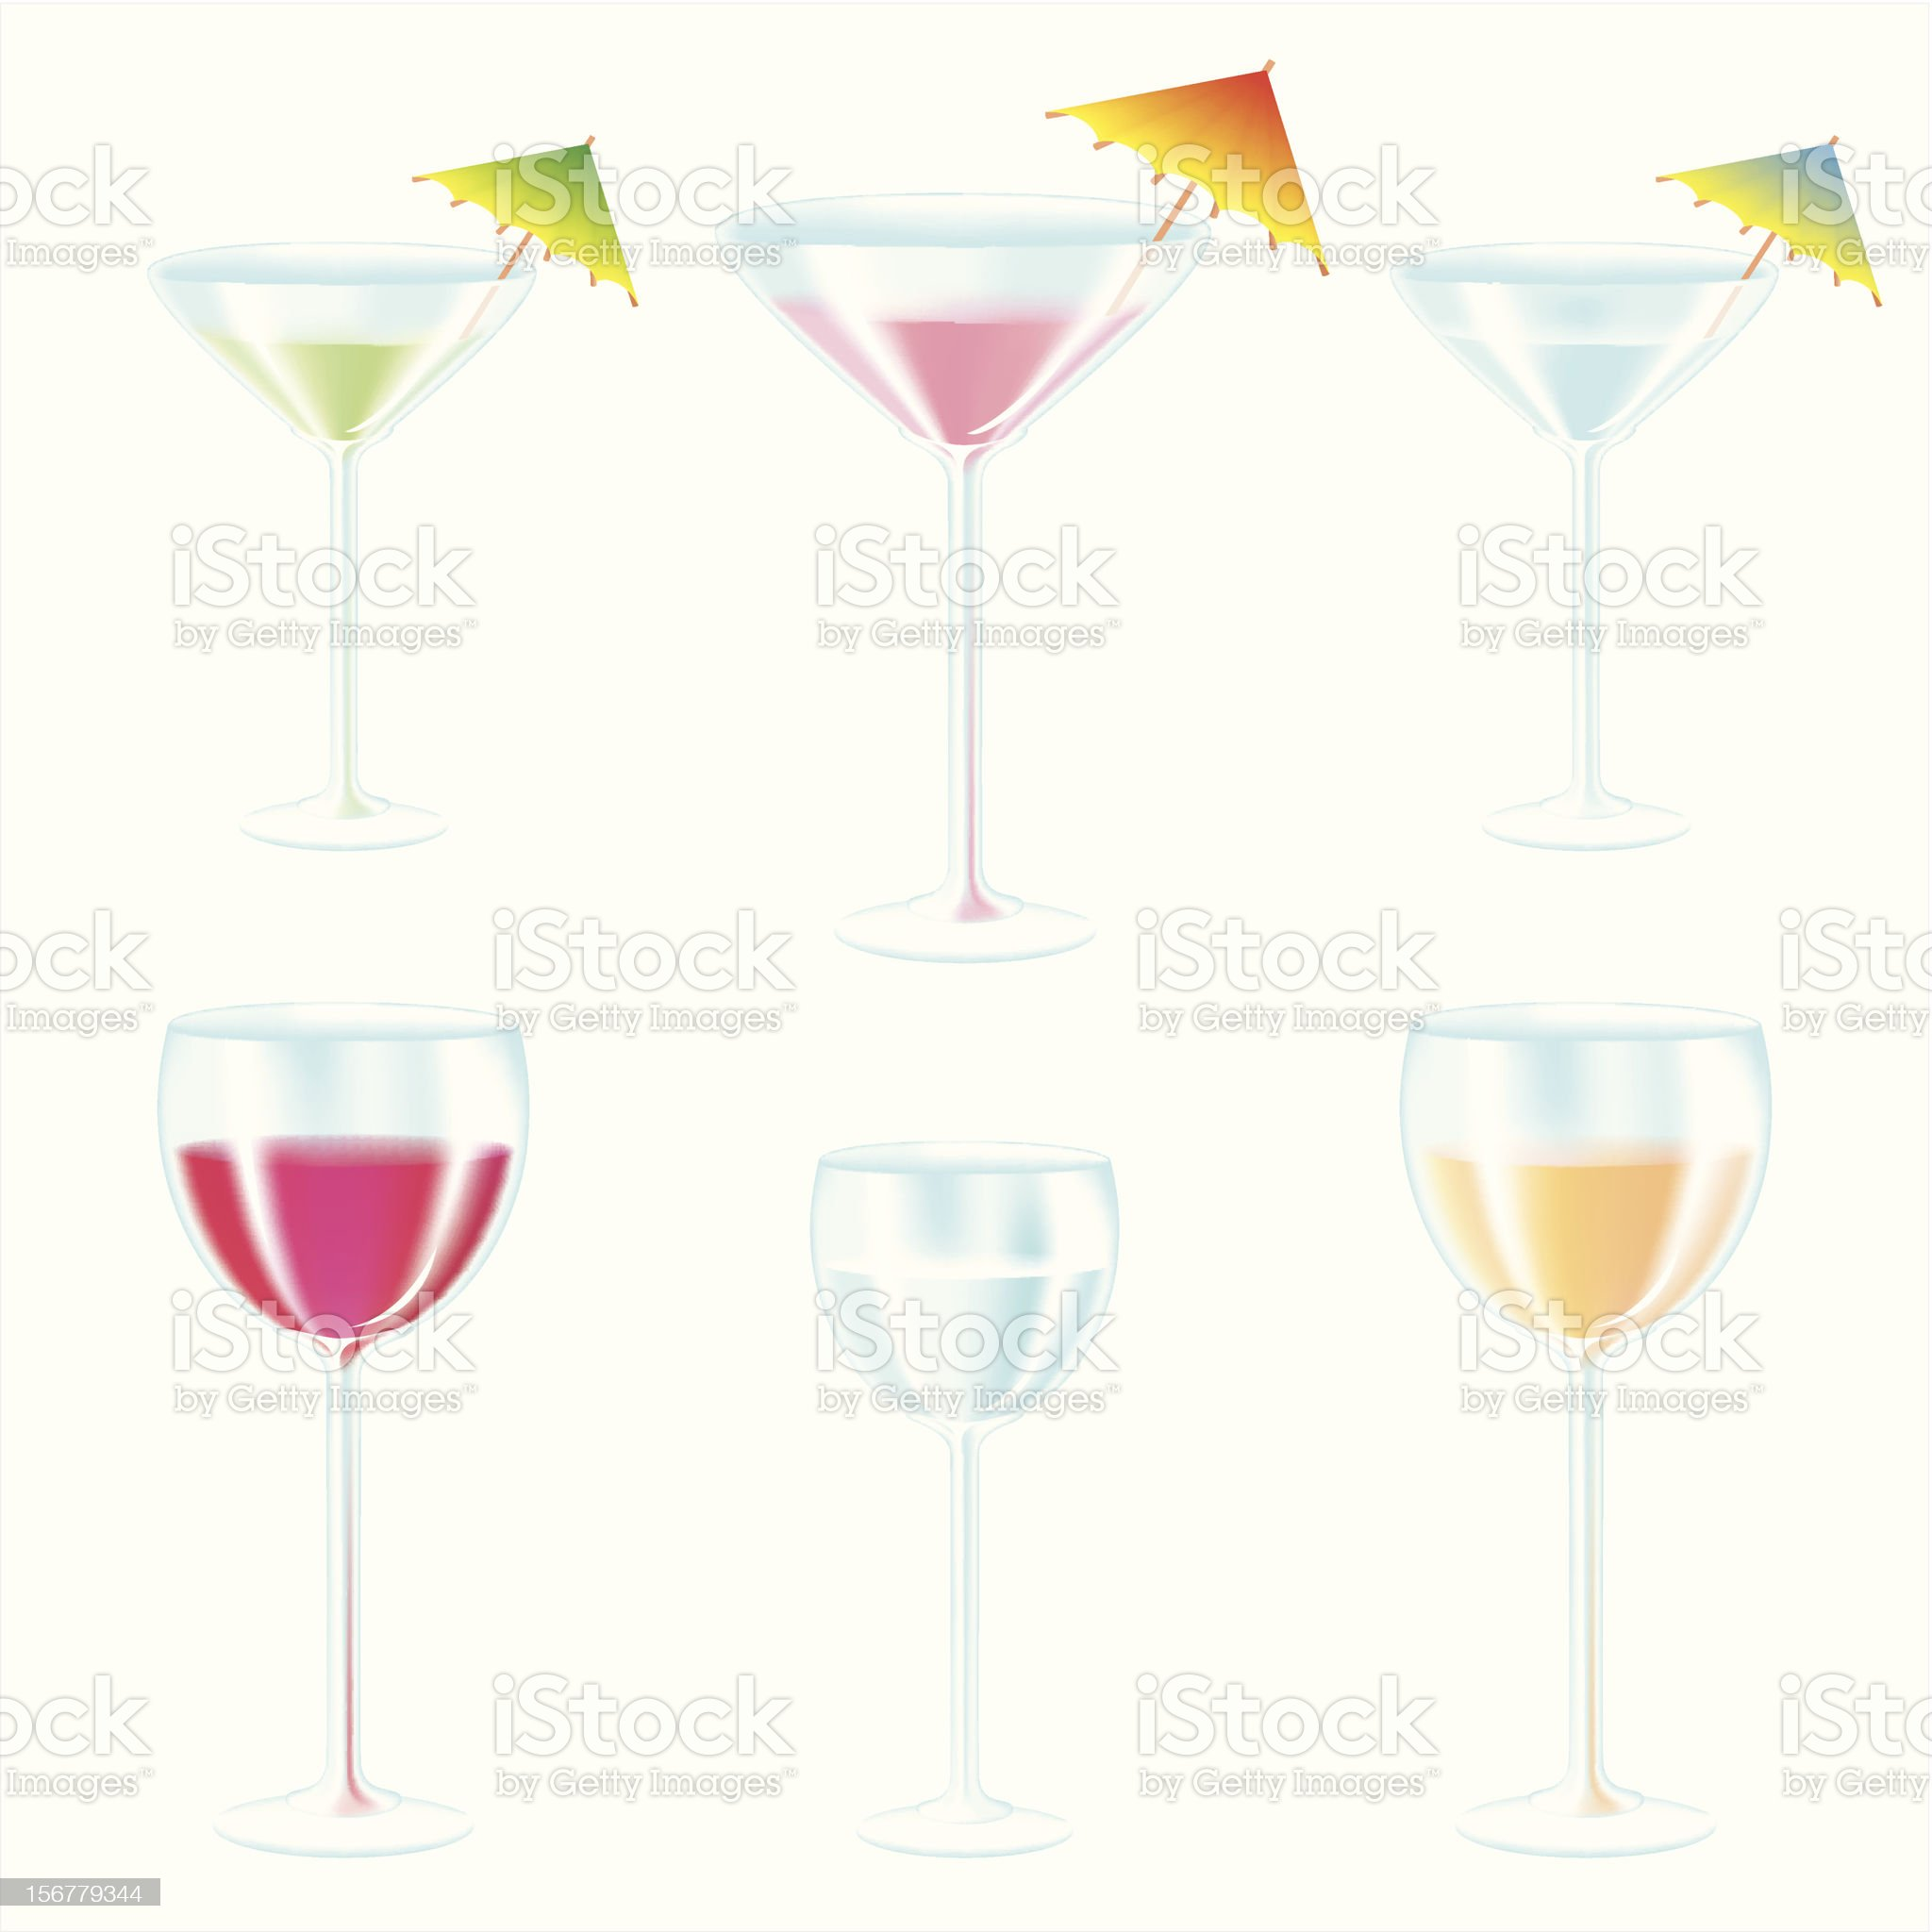 Glasses with drinks and cocktail umbrellas set royalty-free stock vector art